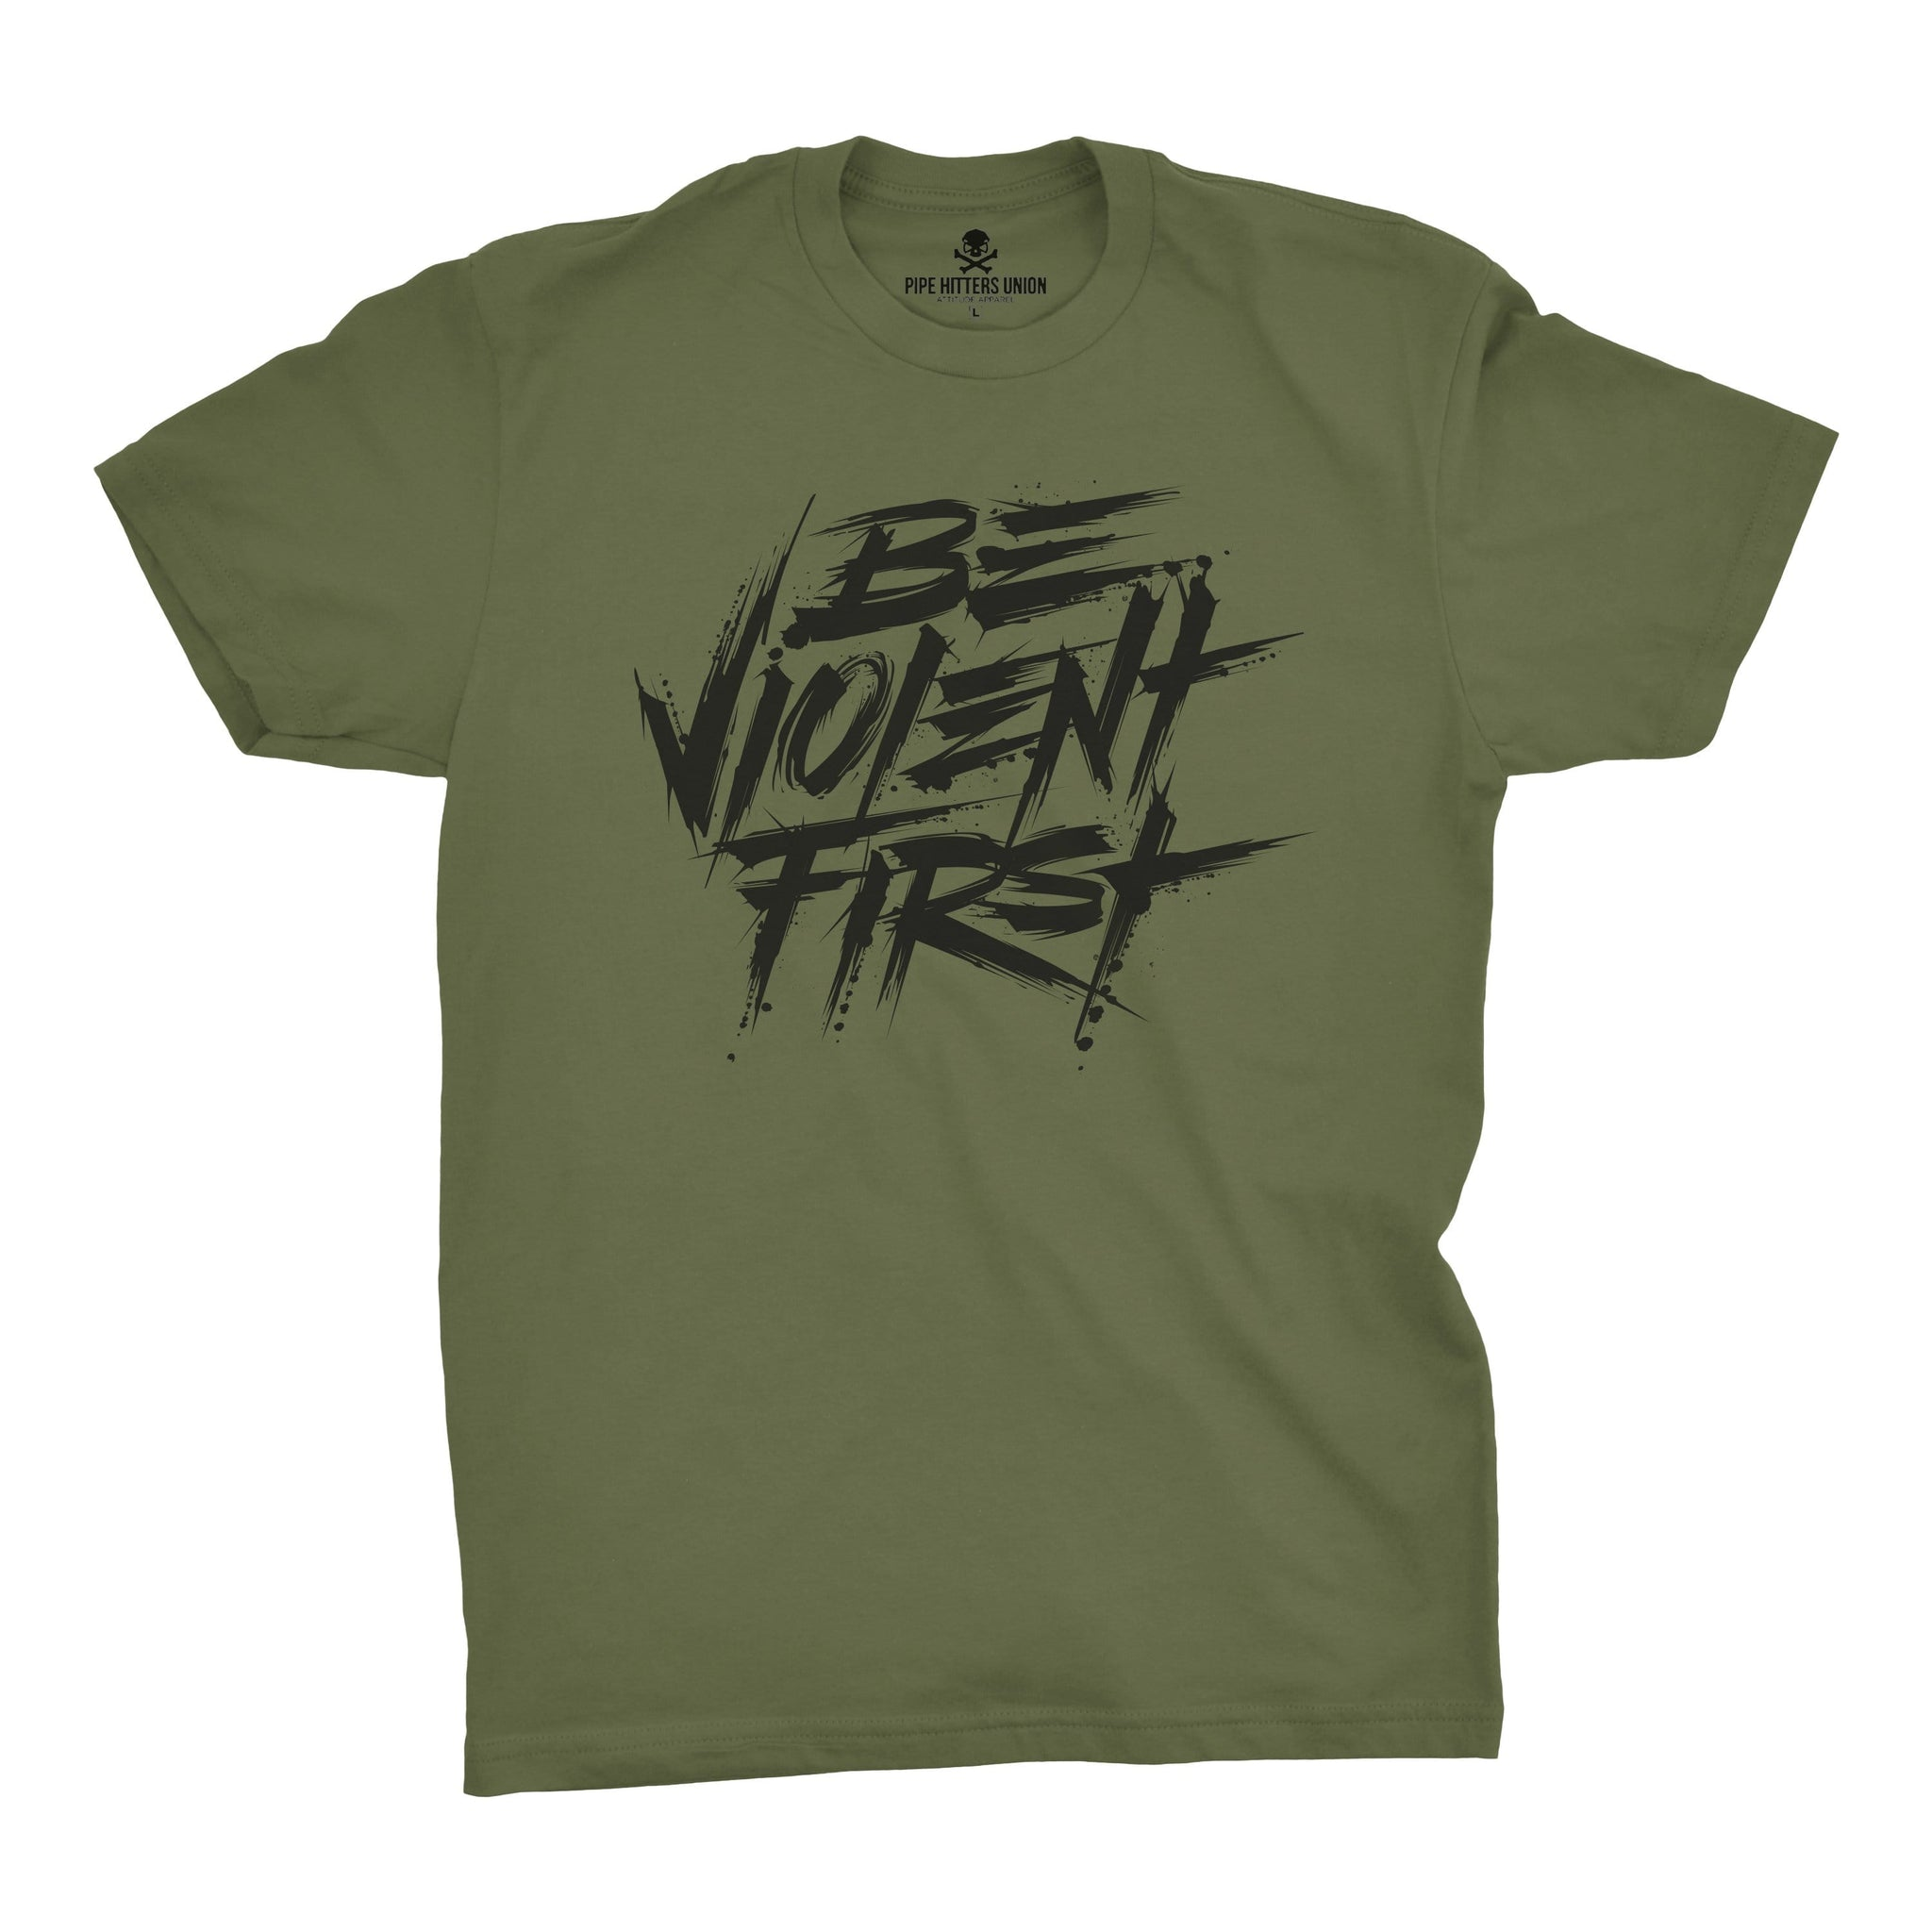 Be Violent First - Military Green - T-Shirts - Pipe Hitters Union